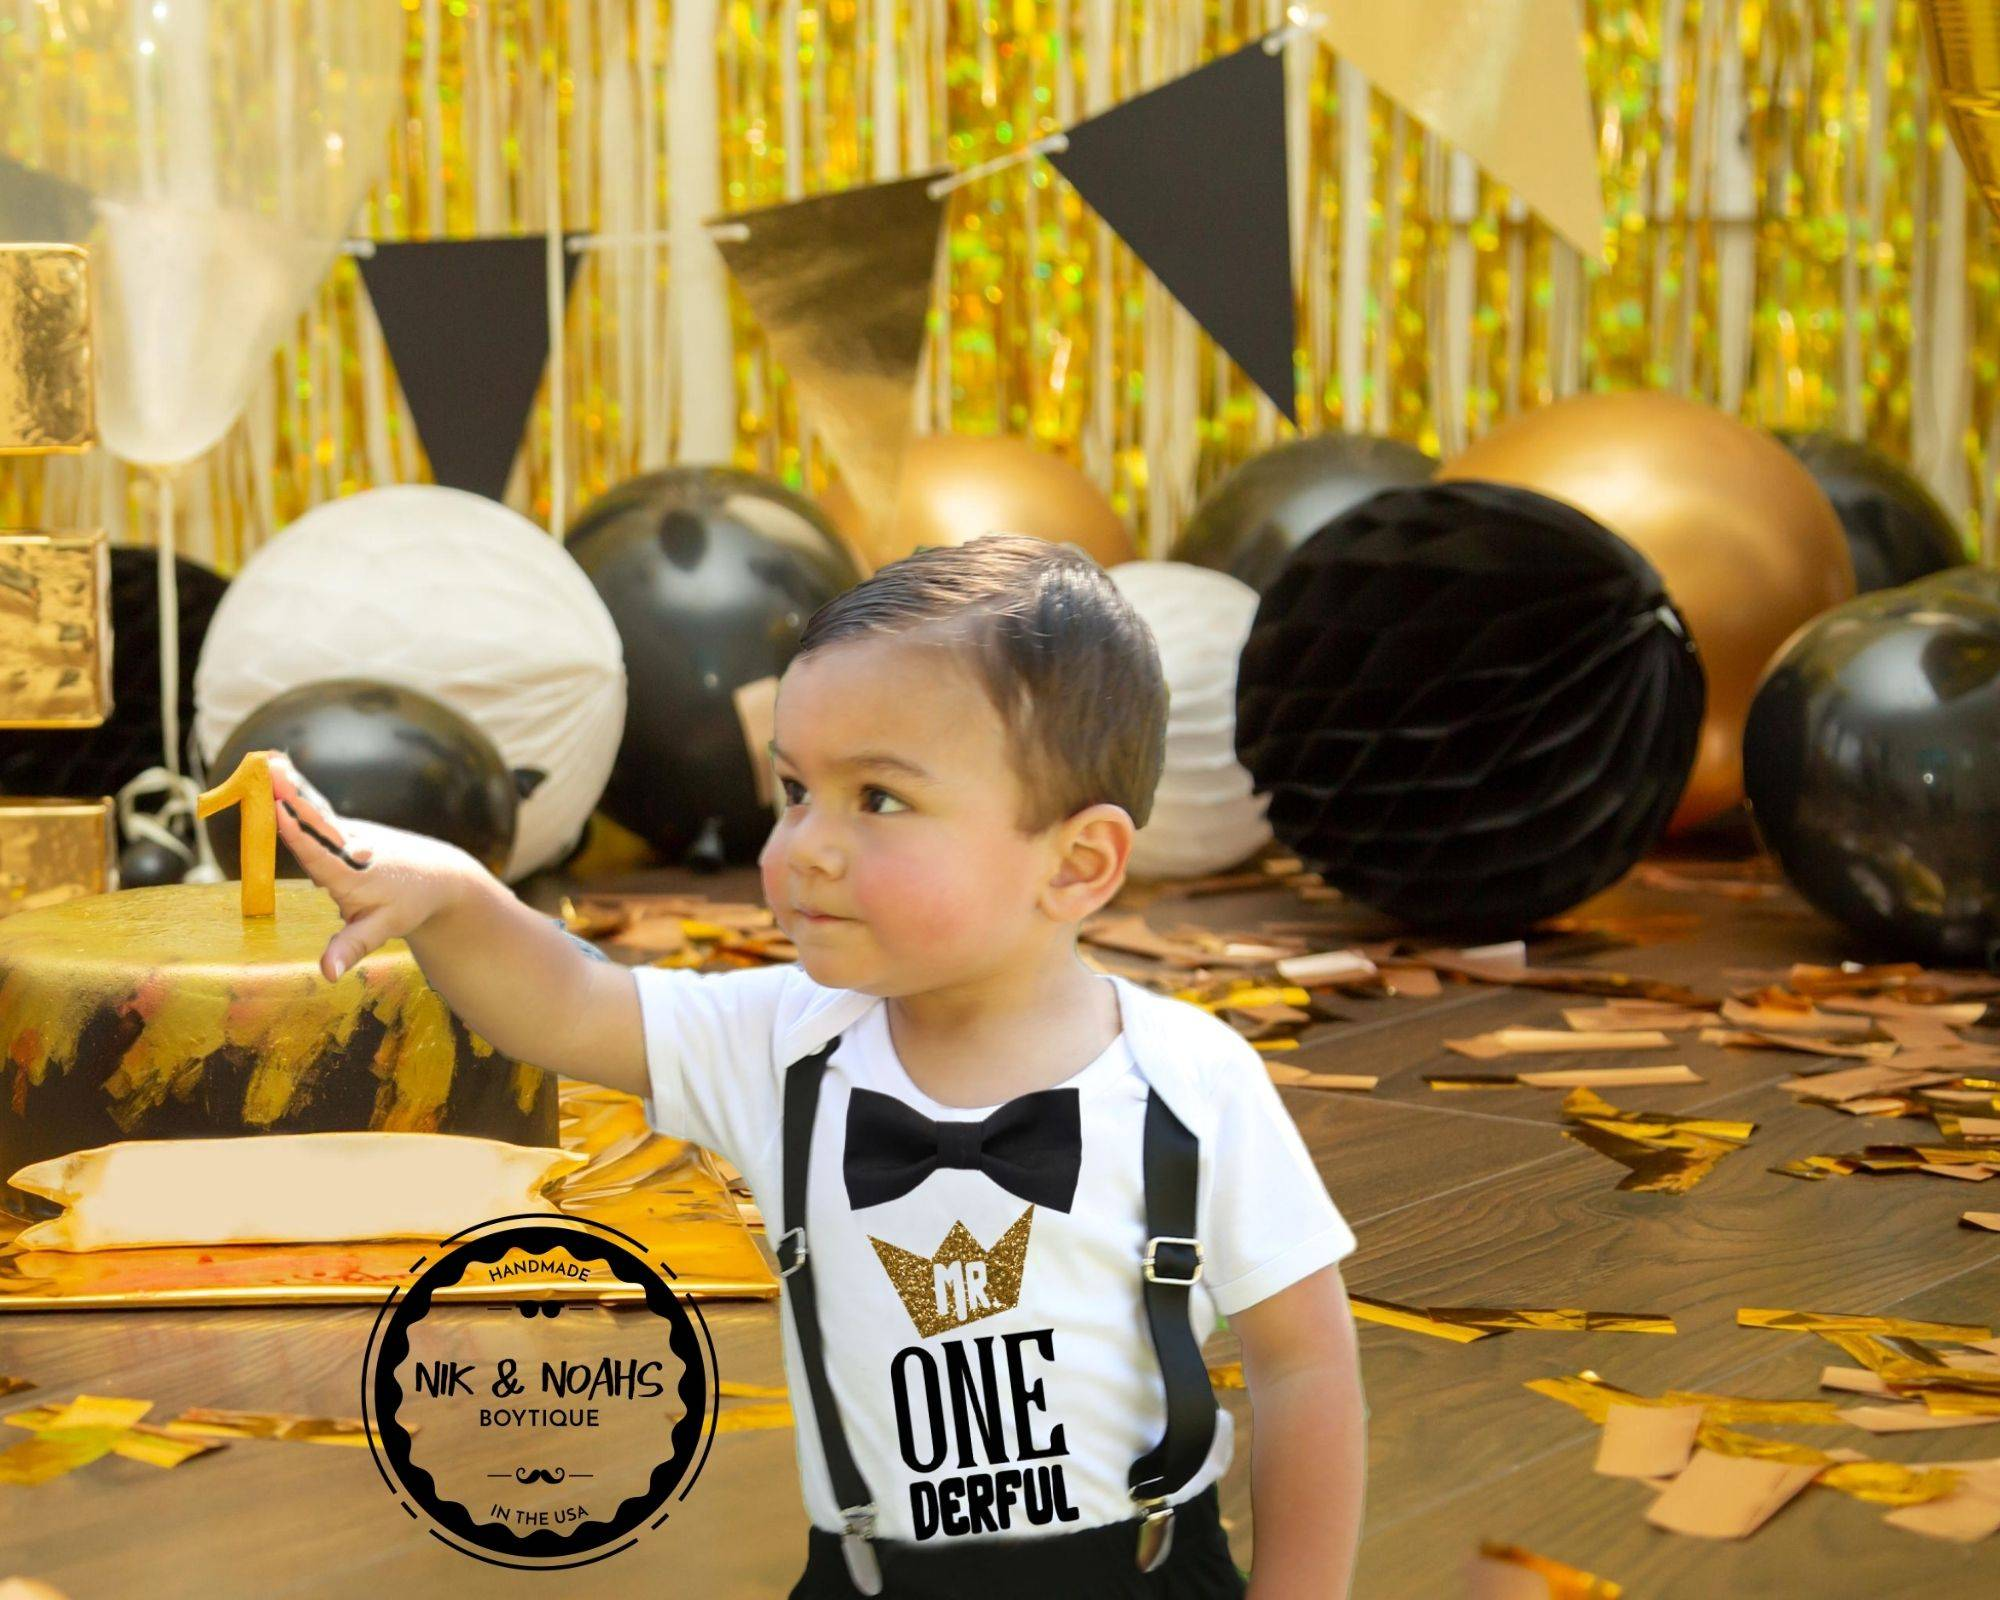 mr onederful first birthday outfit baby boy black and gold party theme ideas cake smash onesie